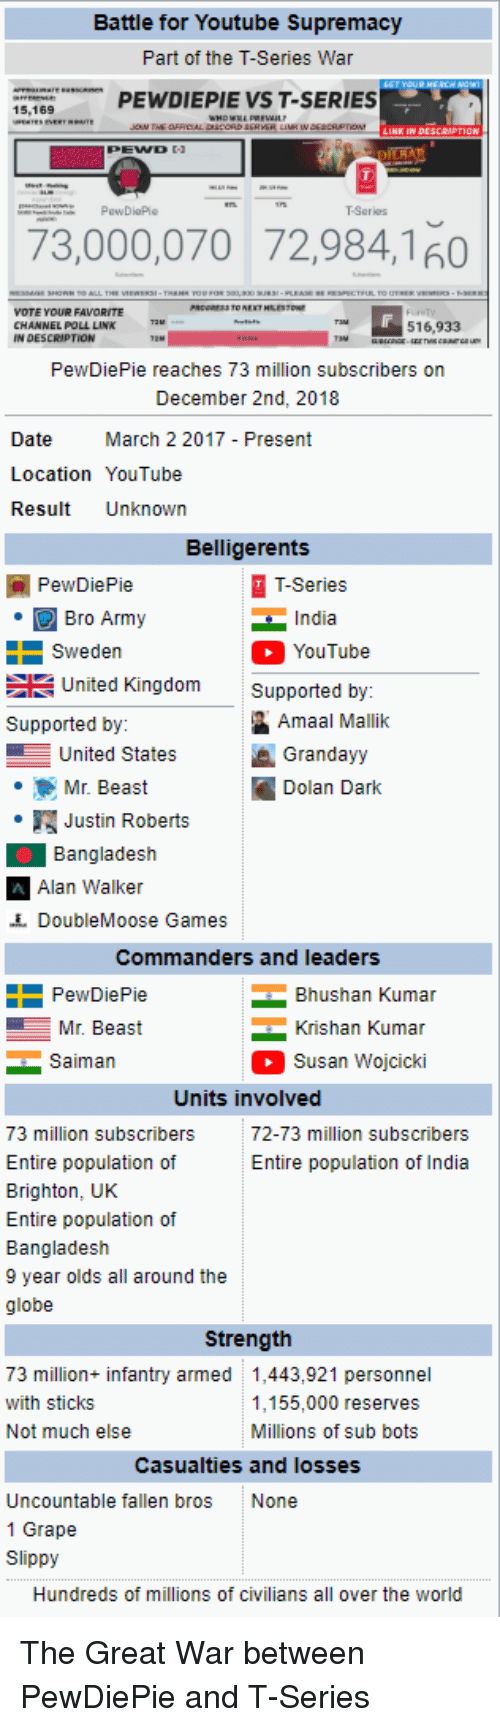 Battle for Youtube Supremacy Part of the T-Series War